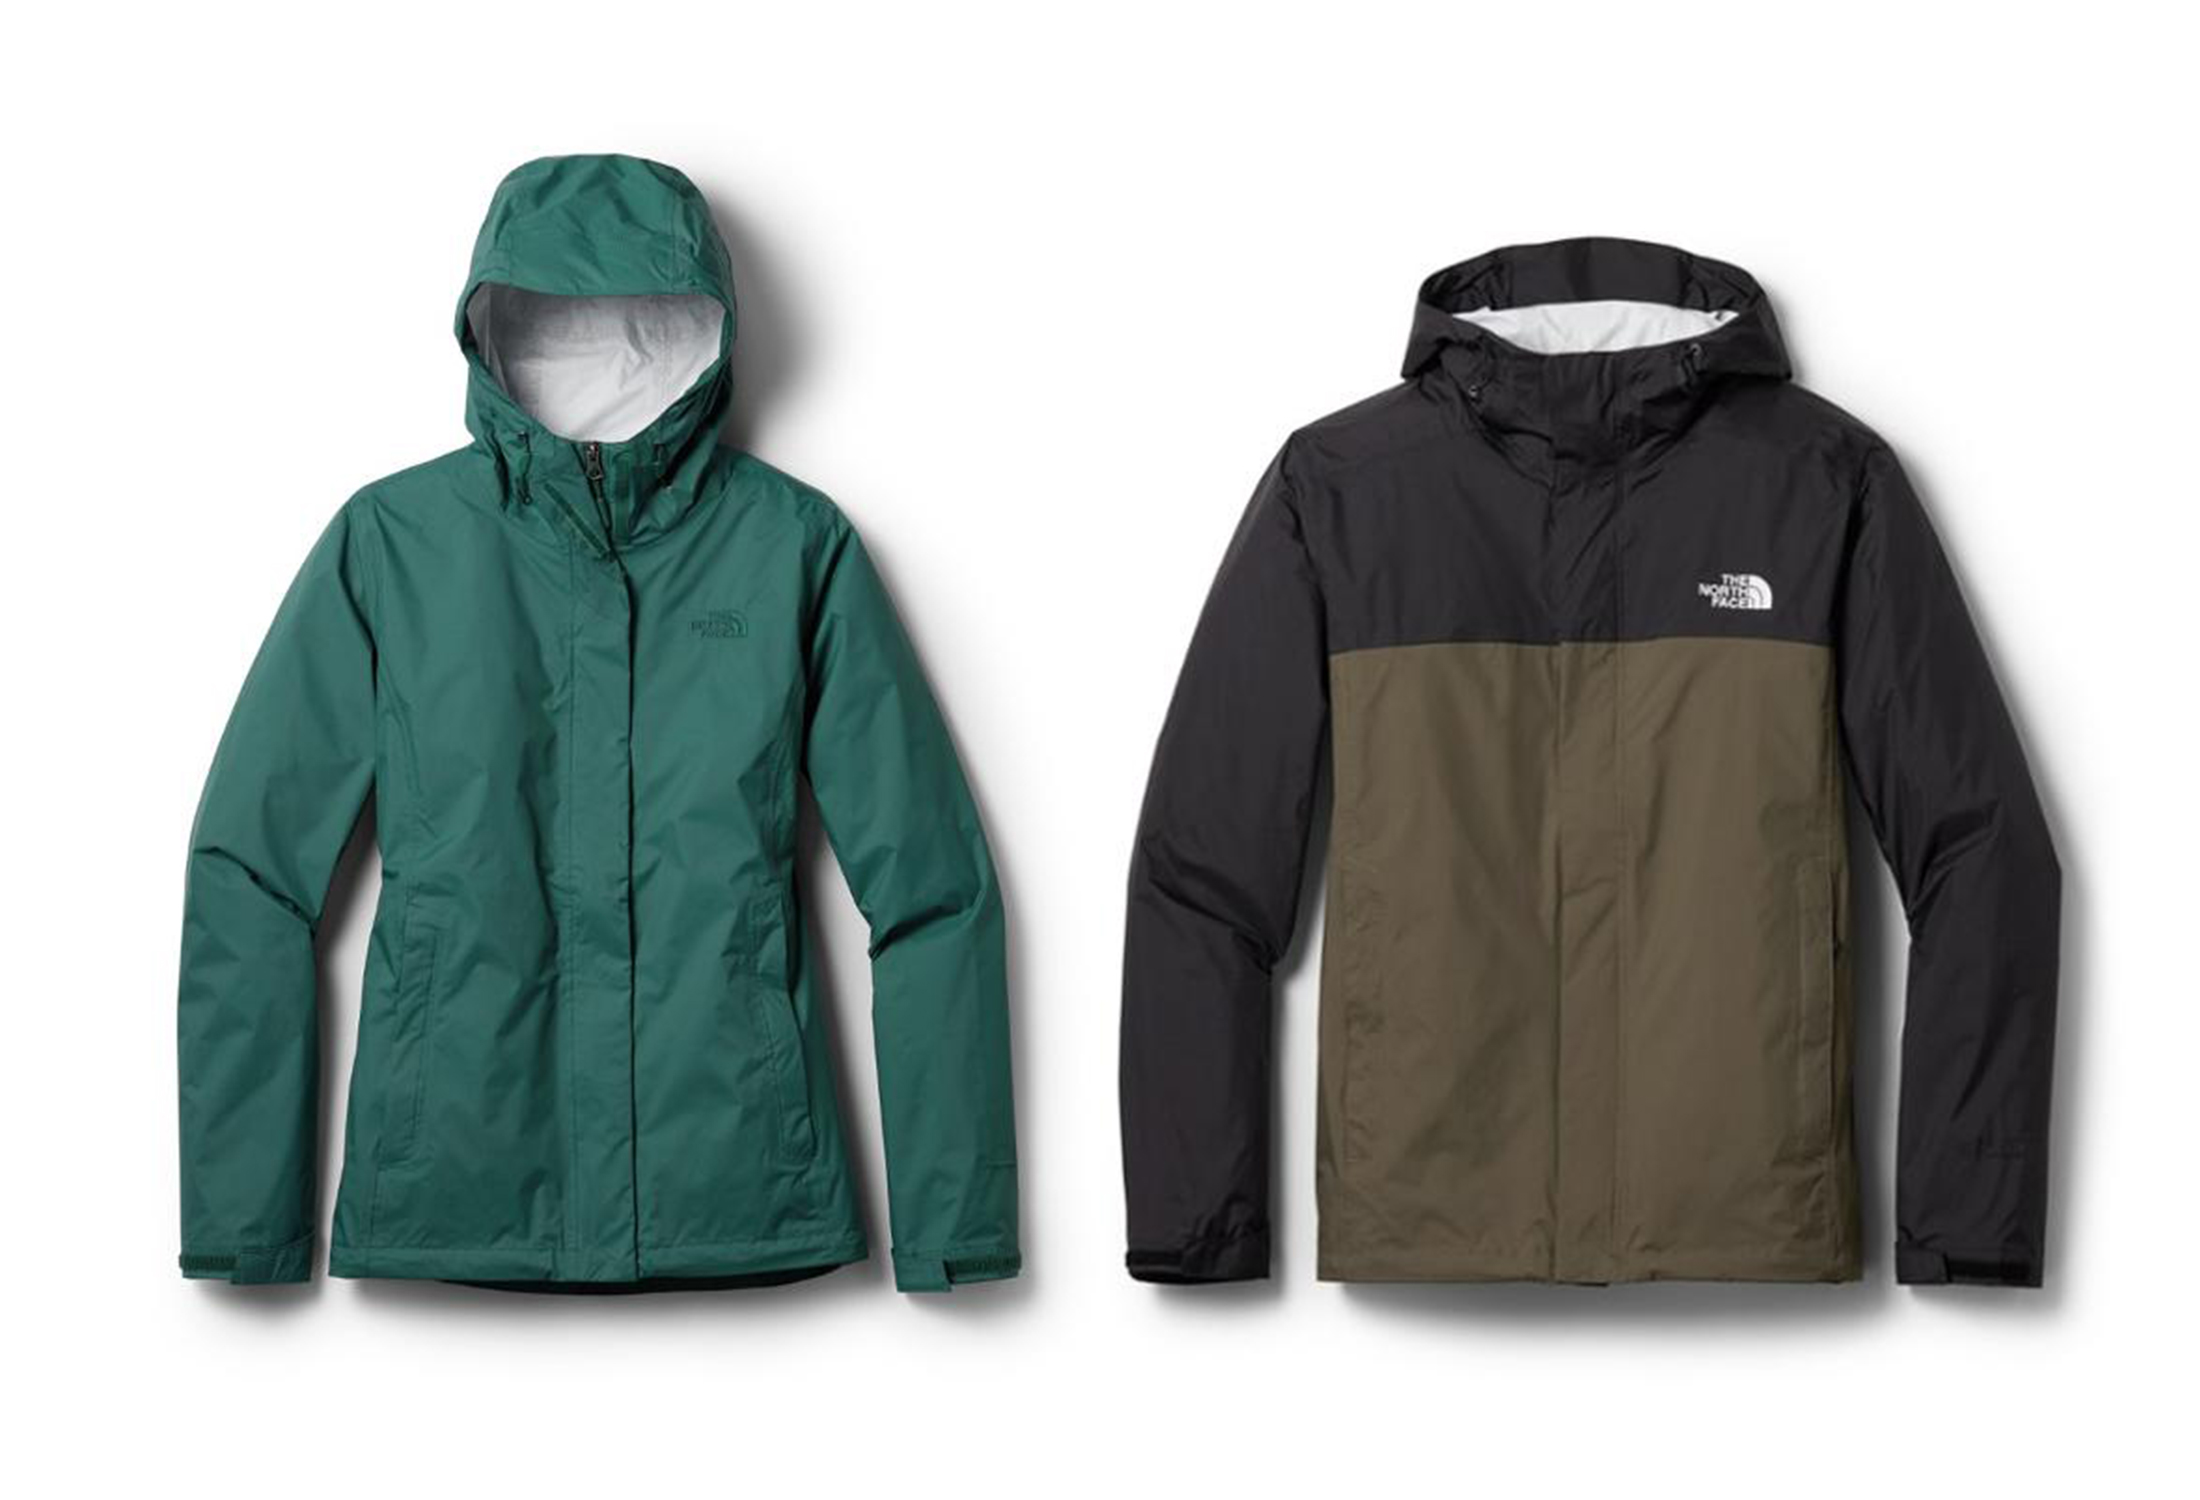 The North Face Venture 2 rain jacket in green with hood up and brown/black with hood down against white background